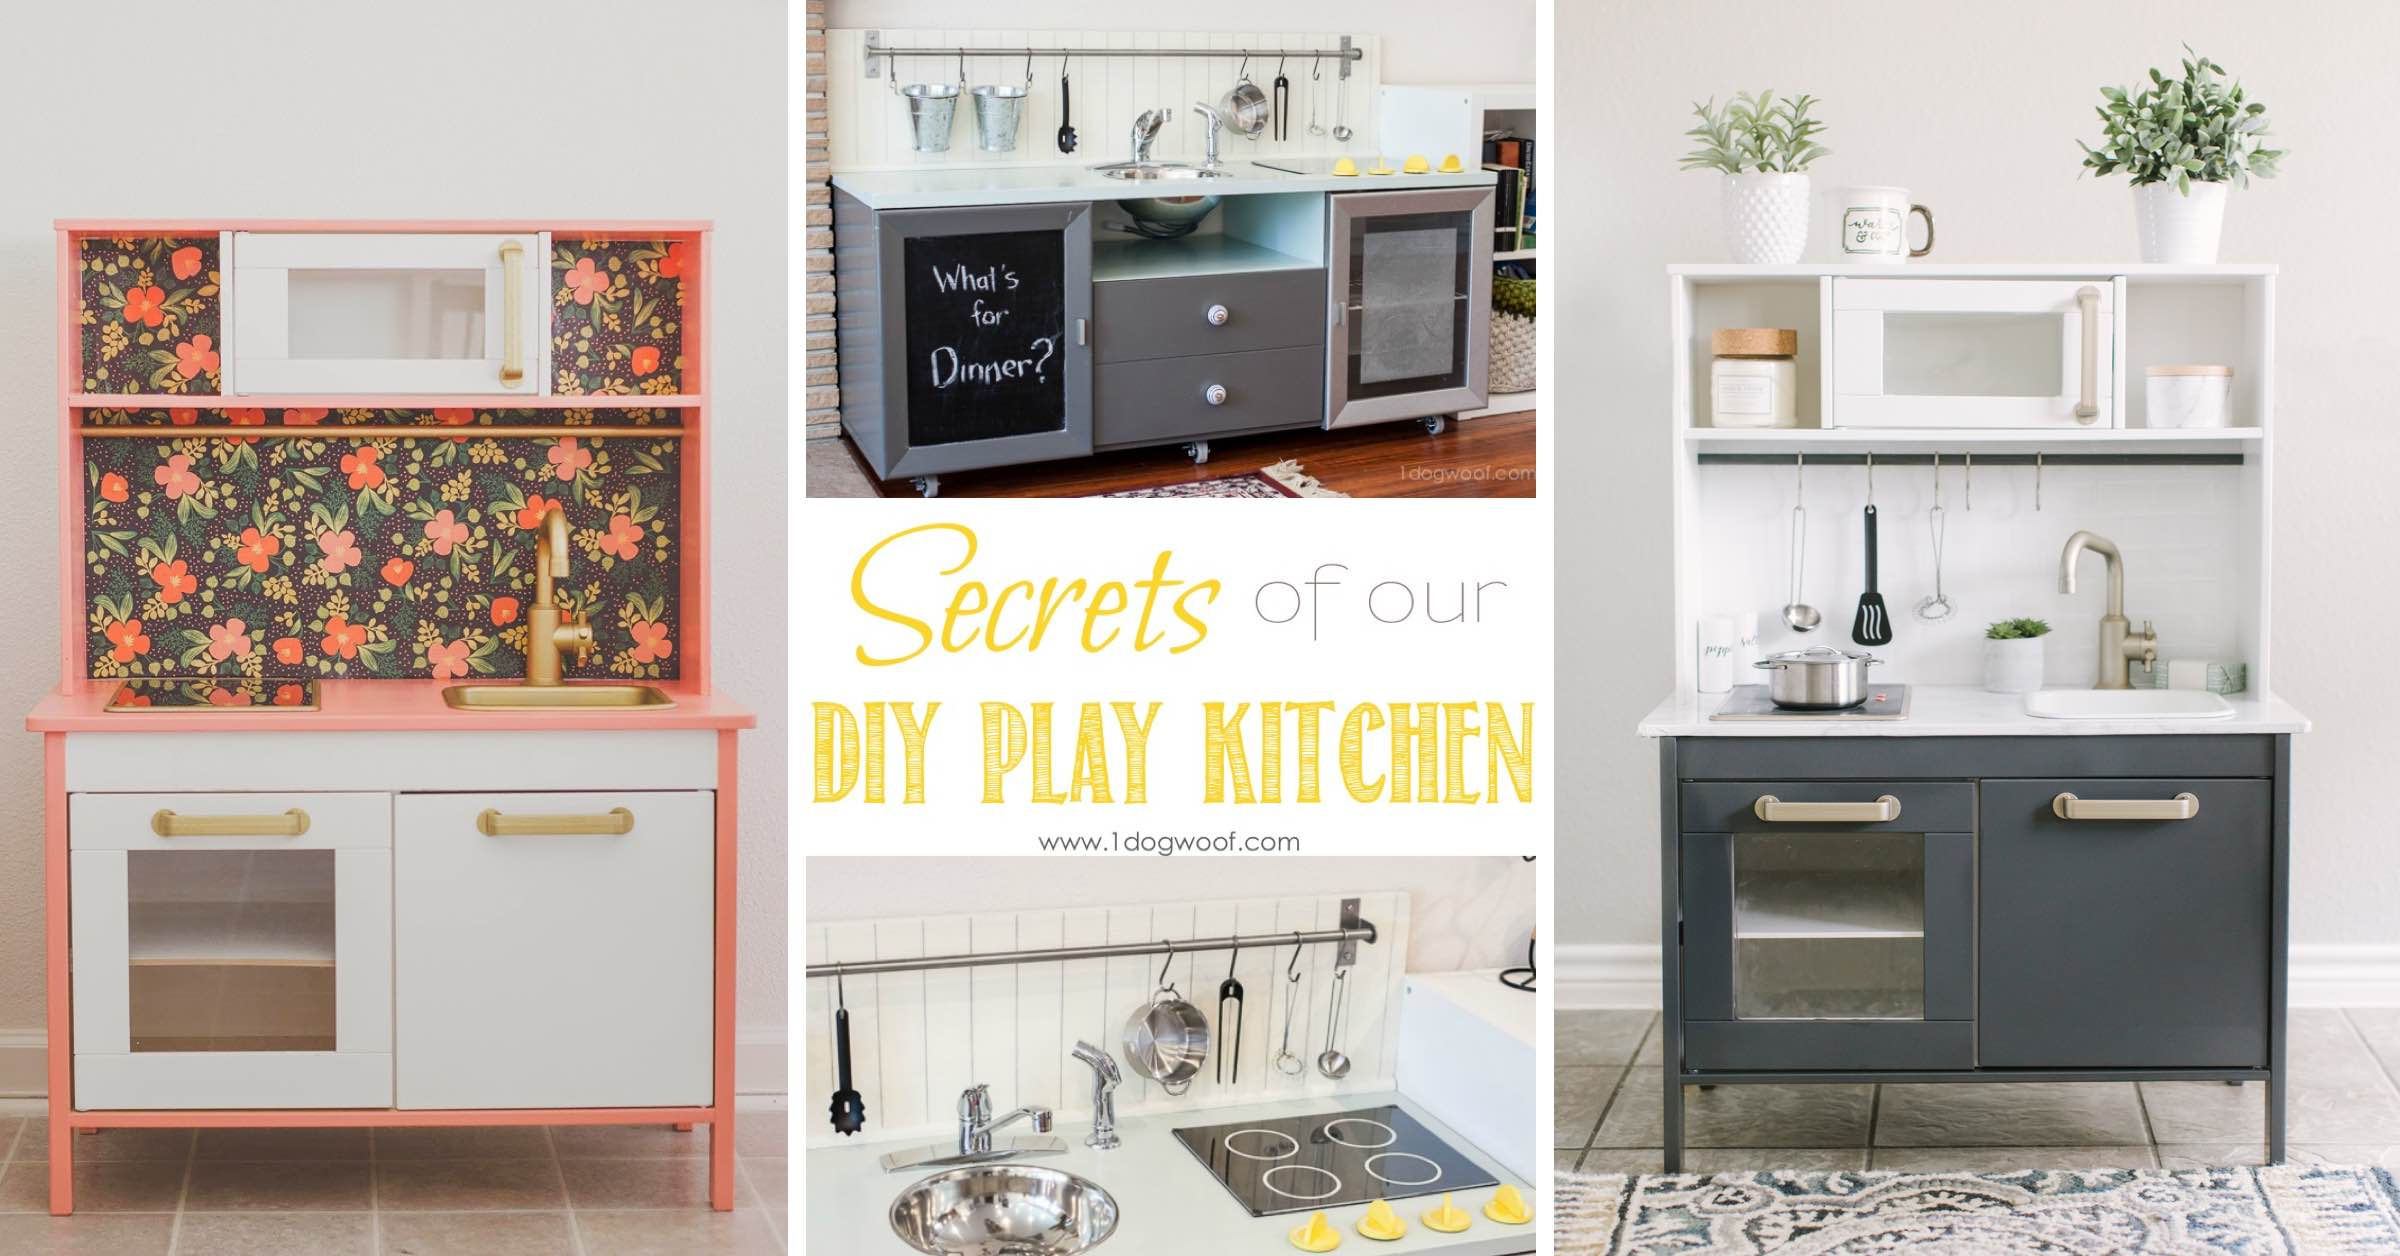 24 Diy Play Kitchen Ideas Making Miniature Pretties That